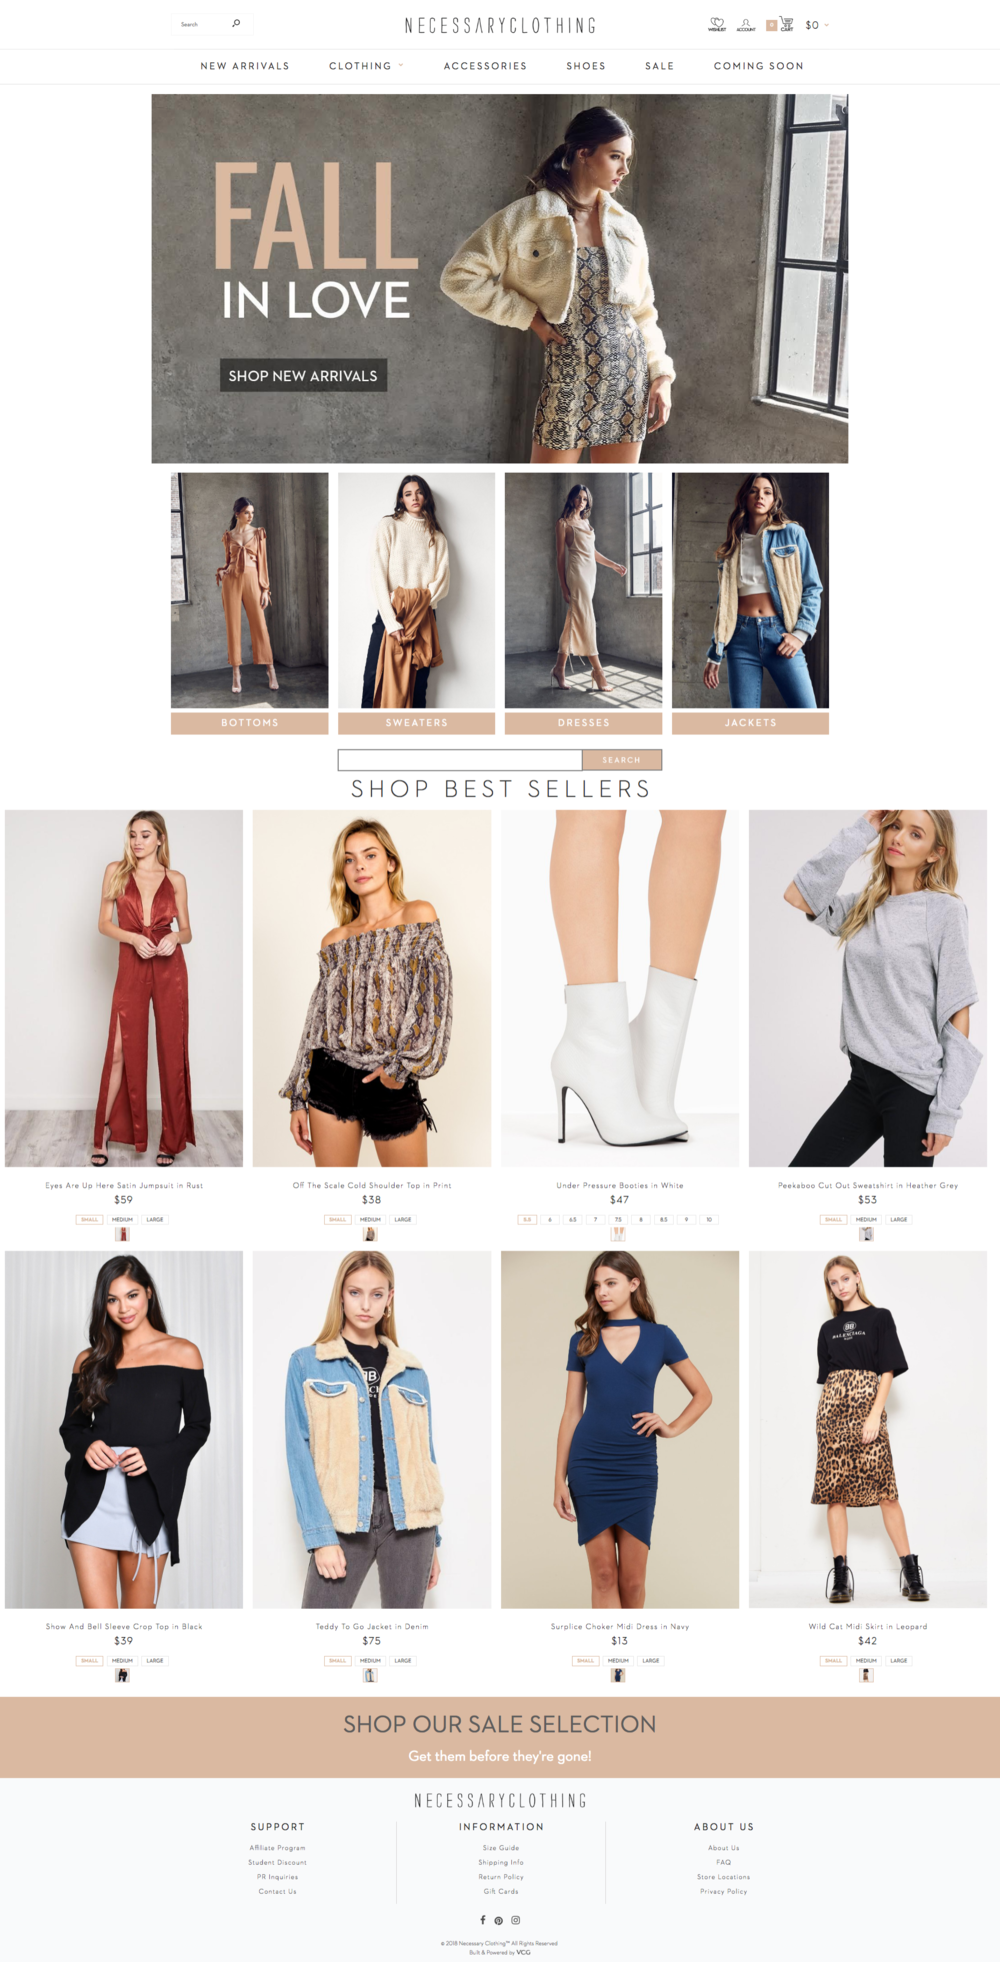 screencapture-necessaryclothing-2018-09-25-14_50_27 2.png